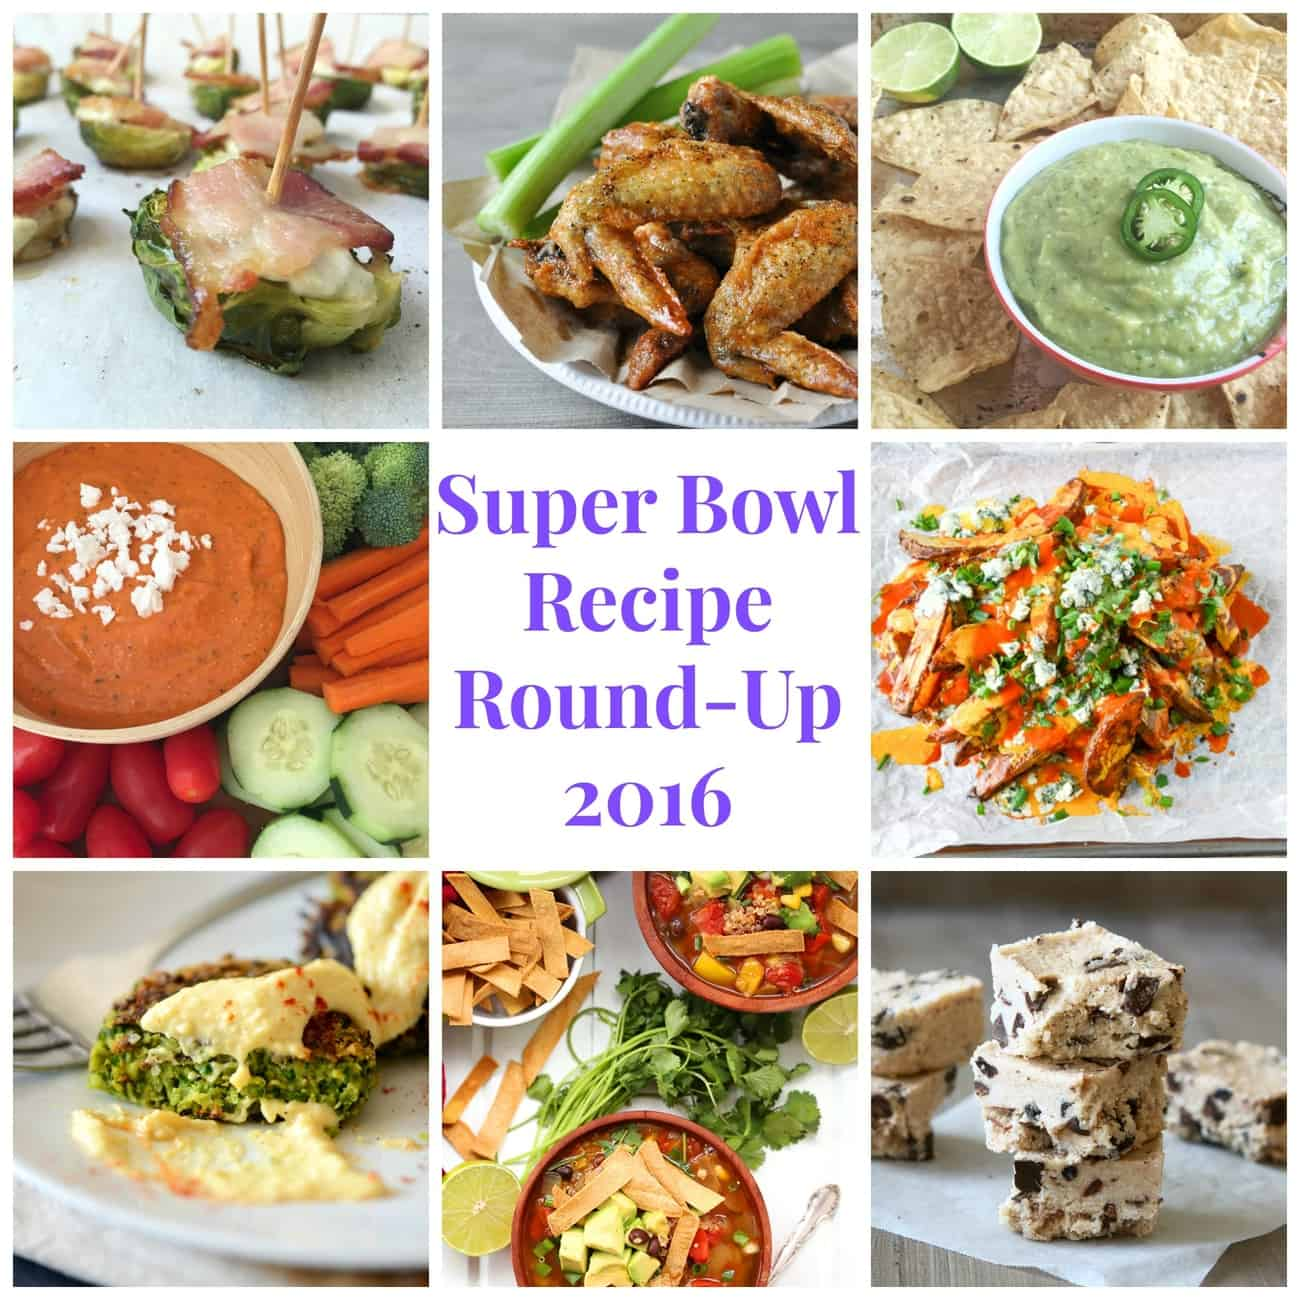 Super Bowl Recipe Round-Up 2016